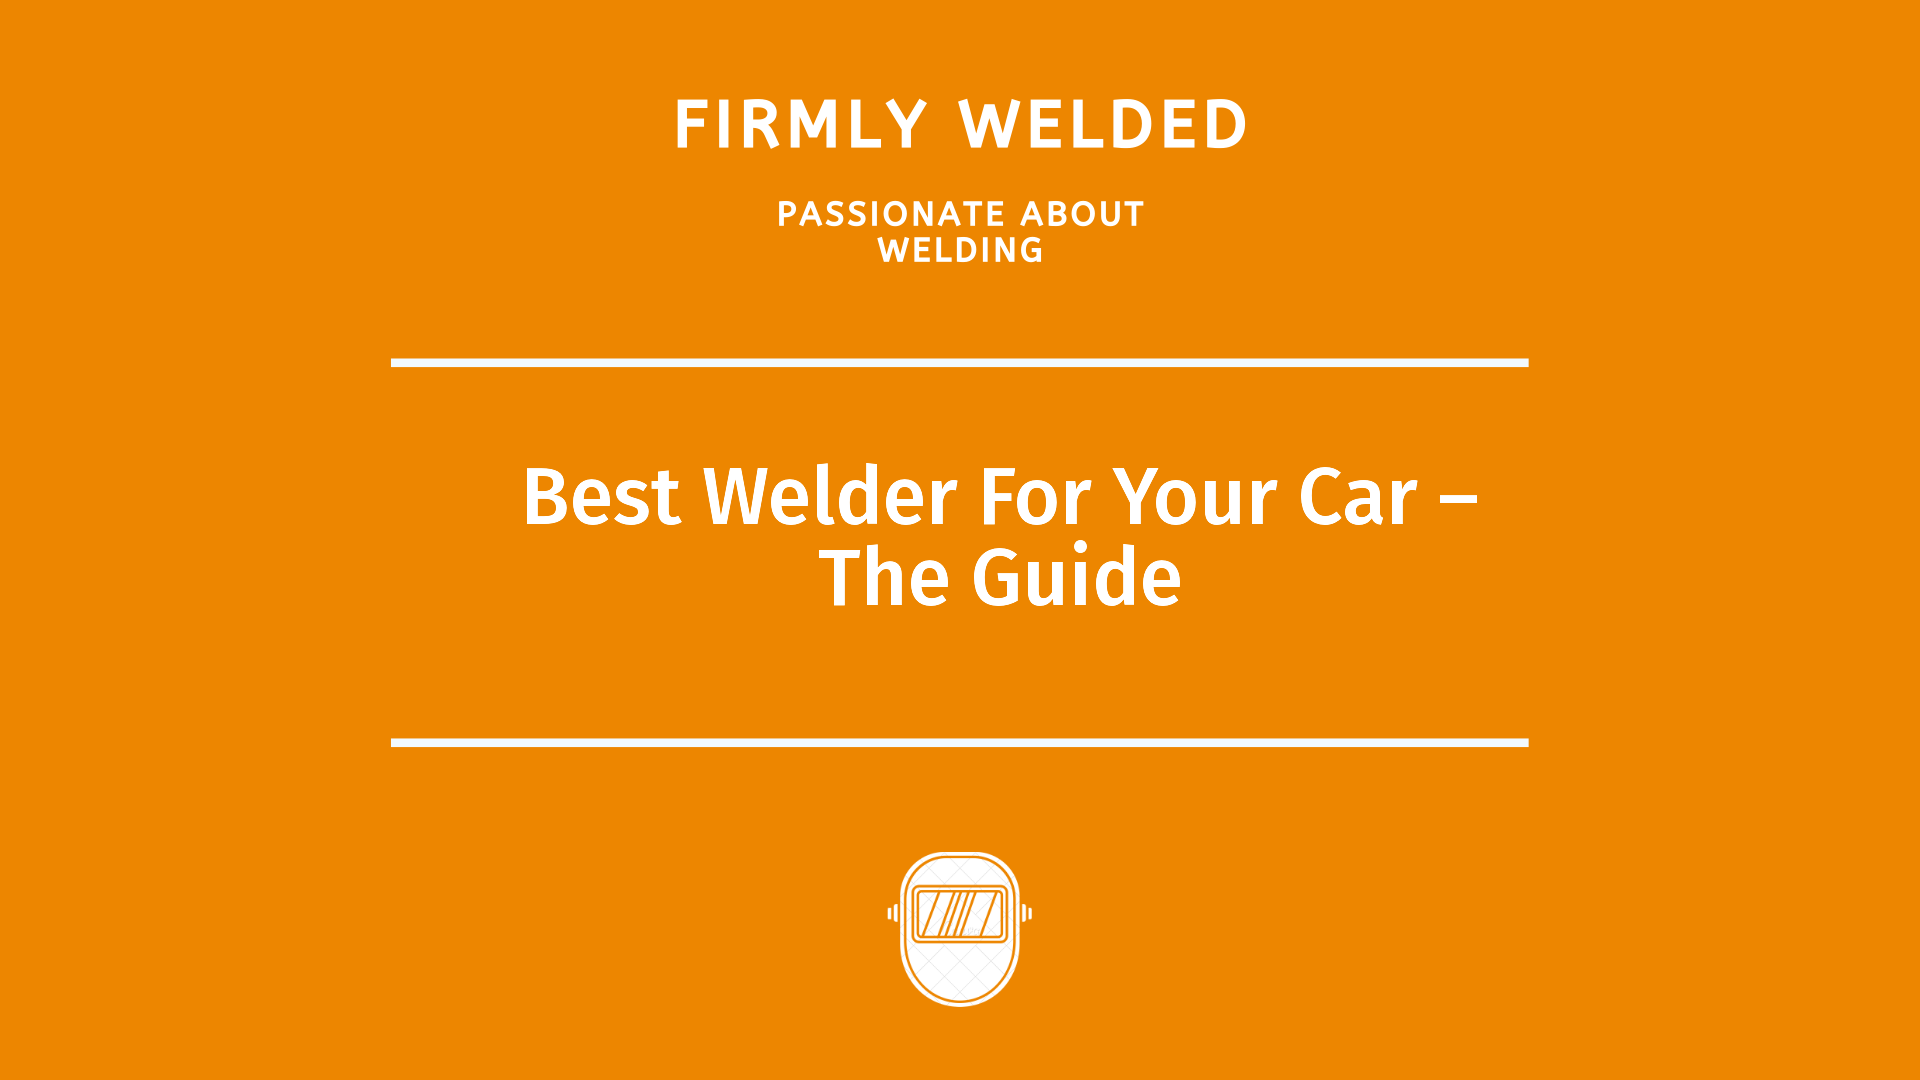 Best Welder For Your Car – The Guide